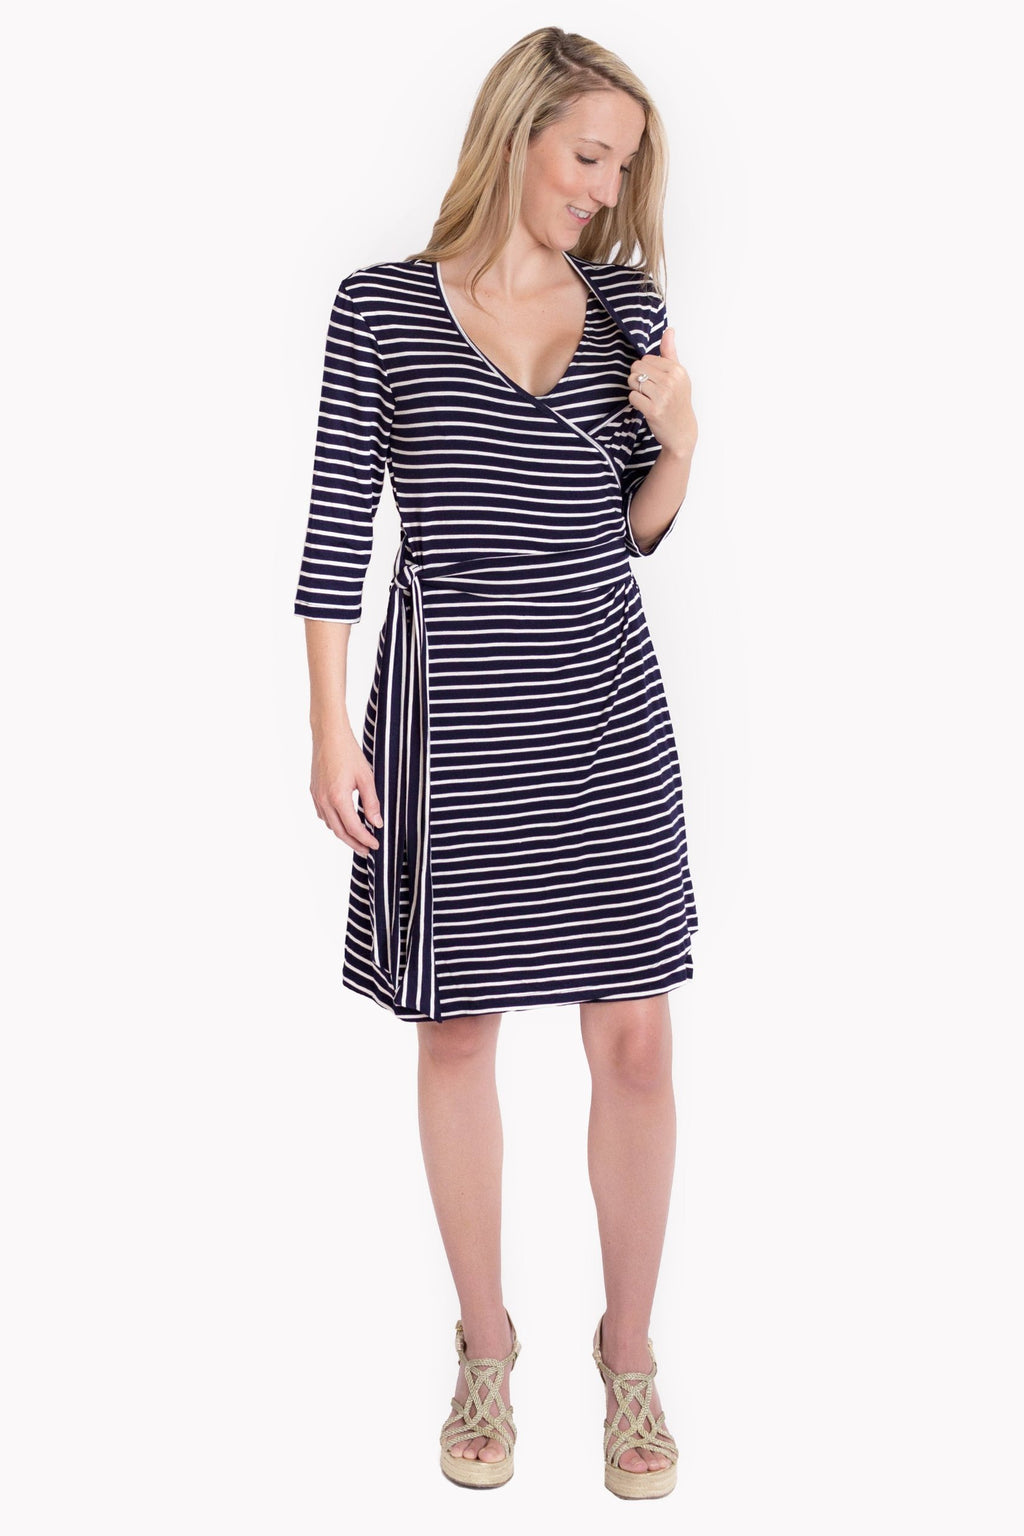 Whimsical Wrap Nursing Dress - Nautical Stripe